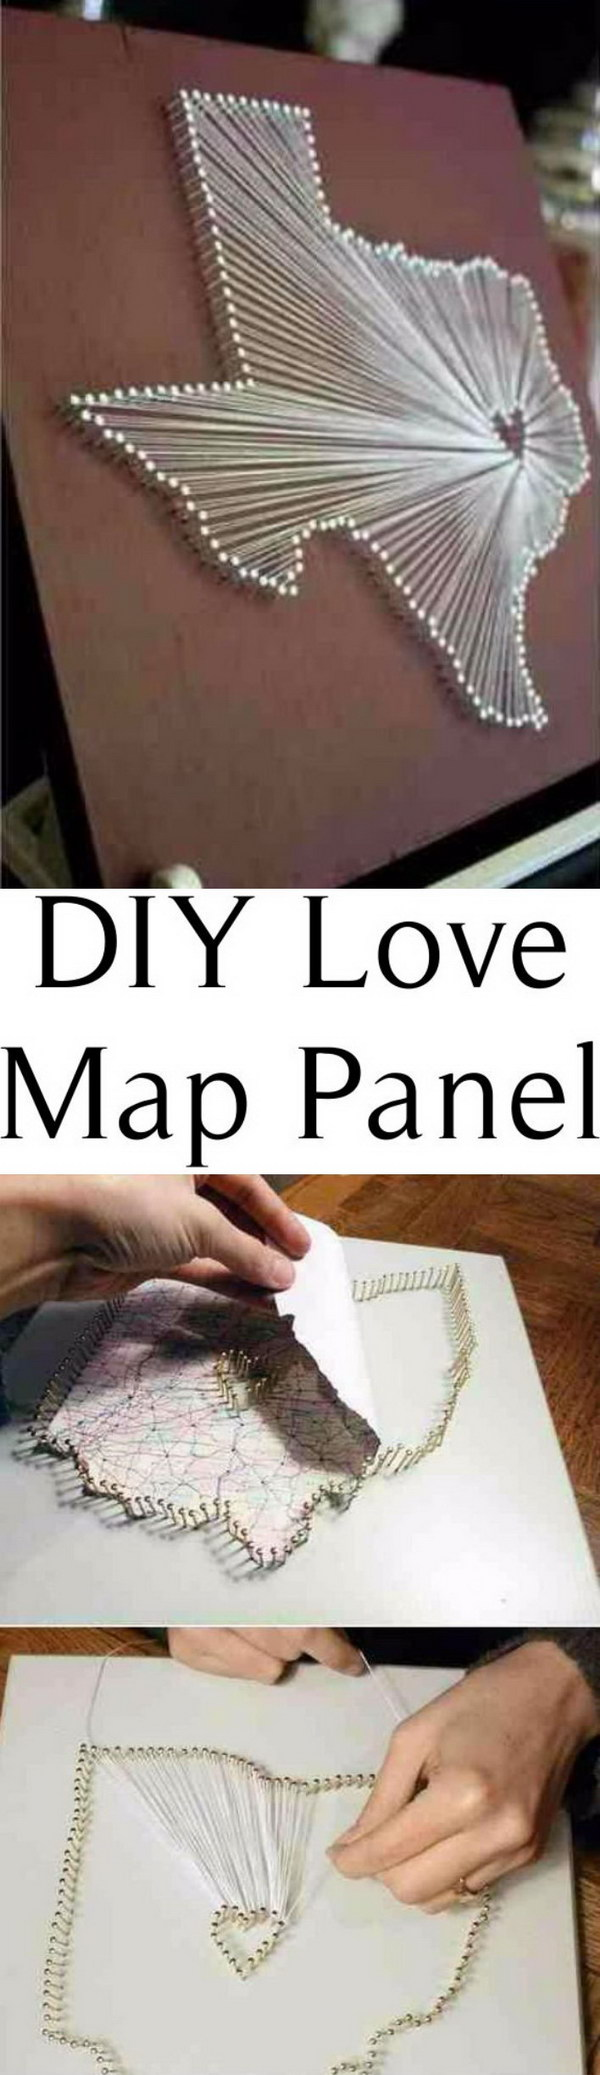 DIY Love Map Panel .